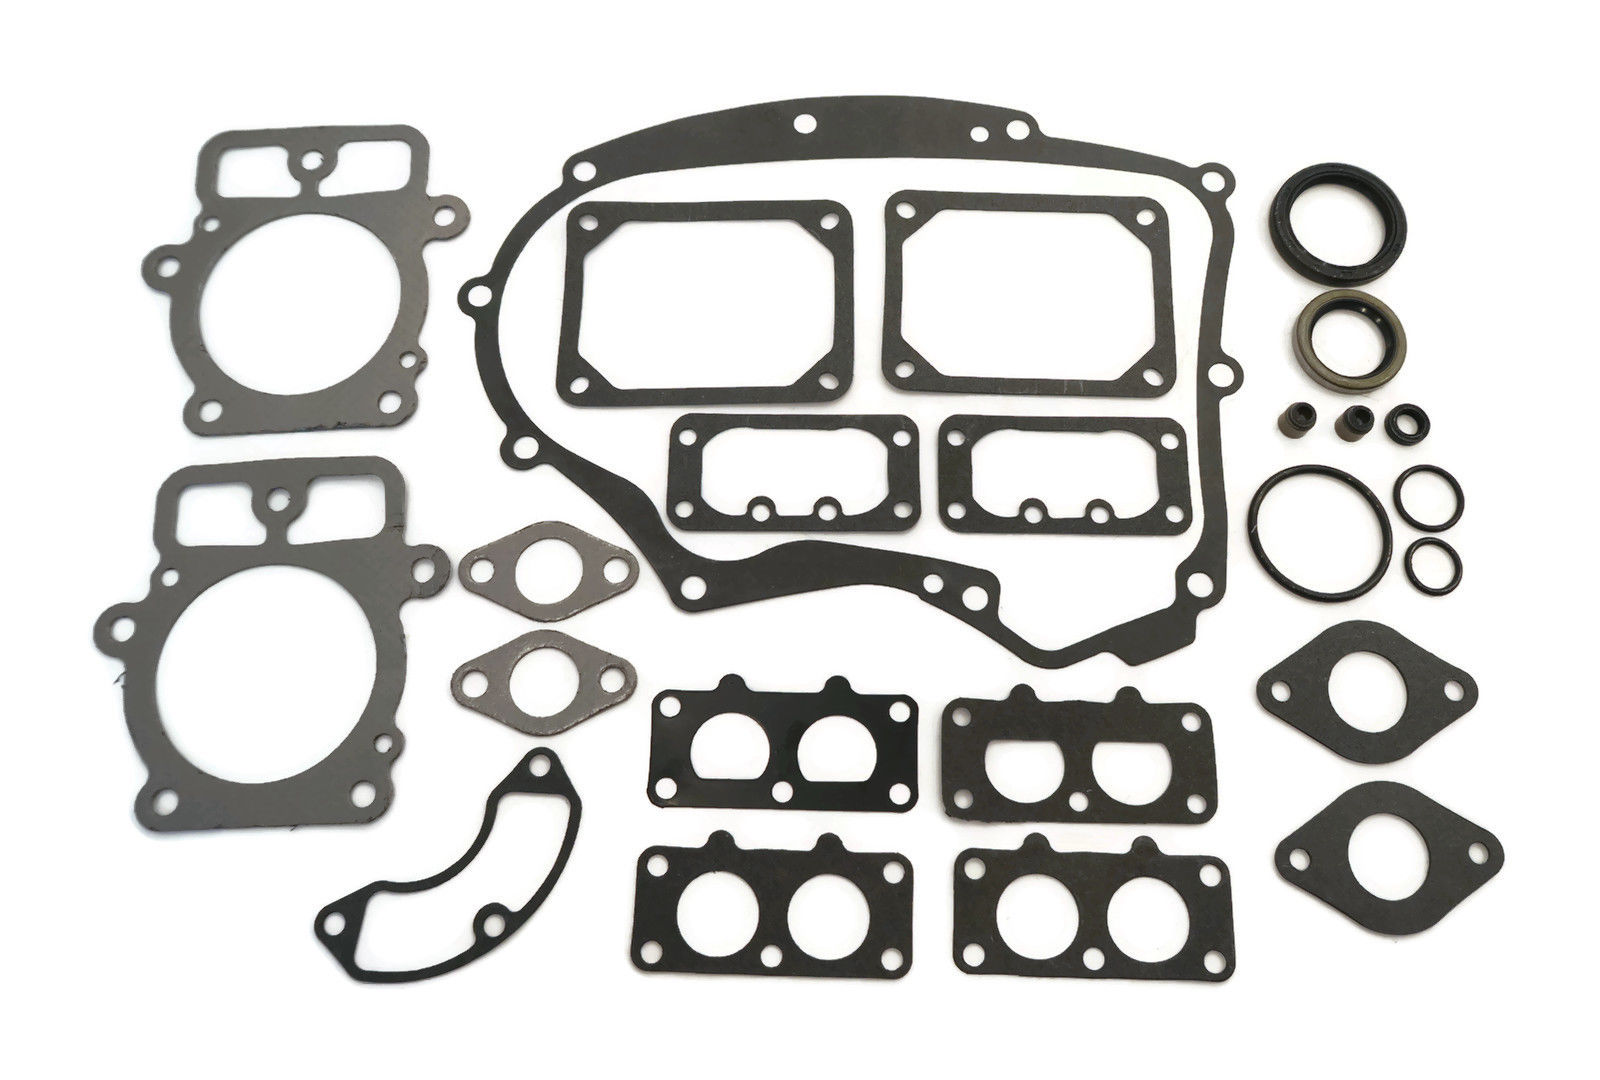 ENGINE GASKET SET for Briggs & Stratton Electrolux 694012 499889 Lawn Tractors by The ROP Shop by The ROP Shop